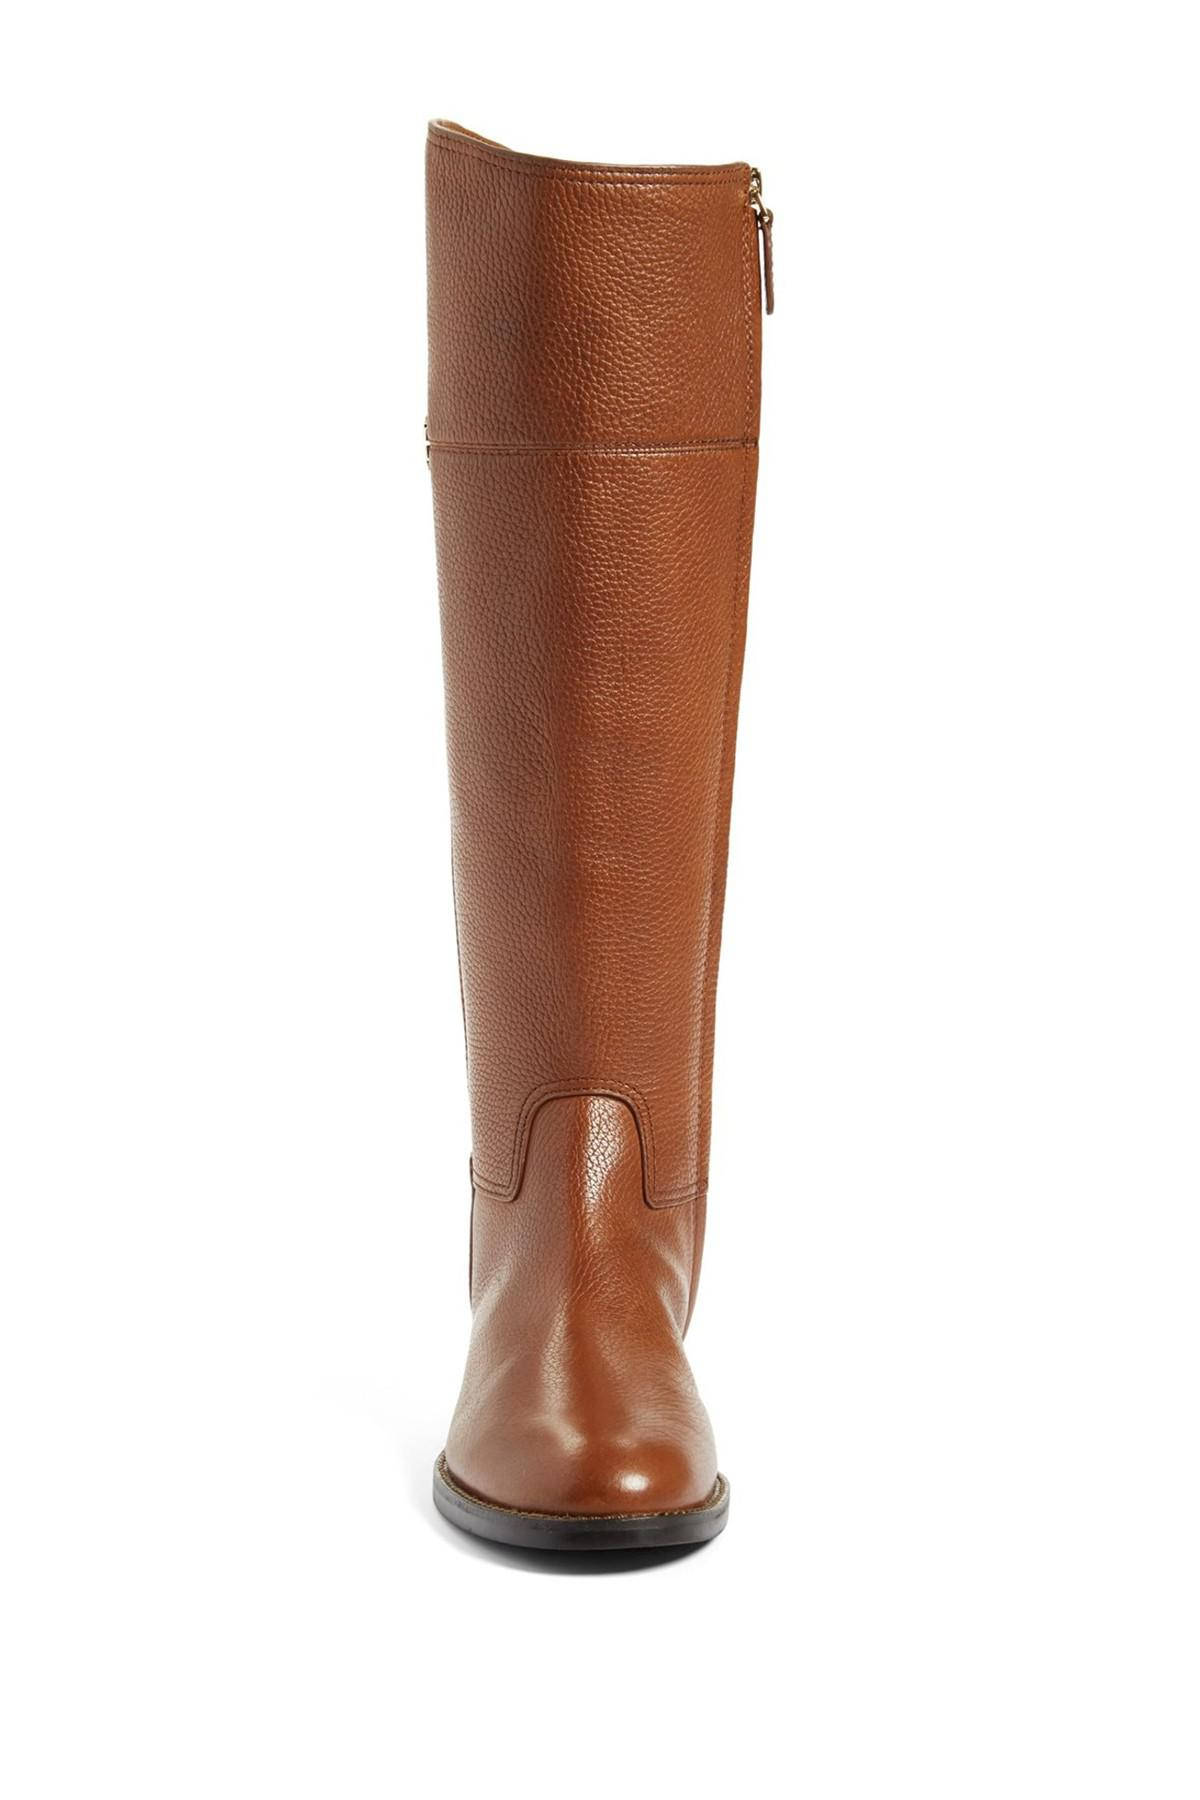 967bac51430 Lyst - Tory Burch Jolie Riding Boot in Brown